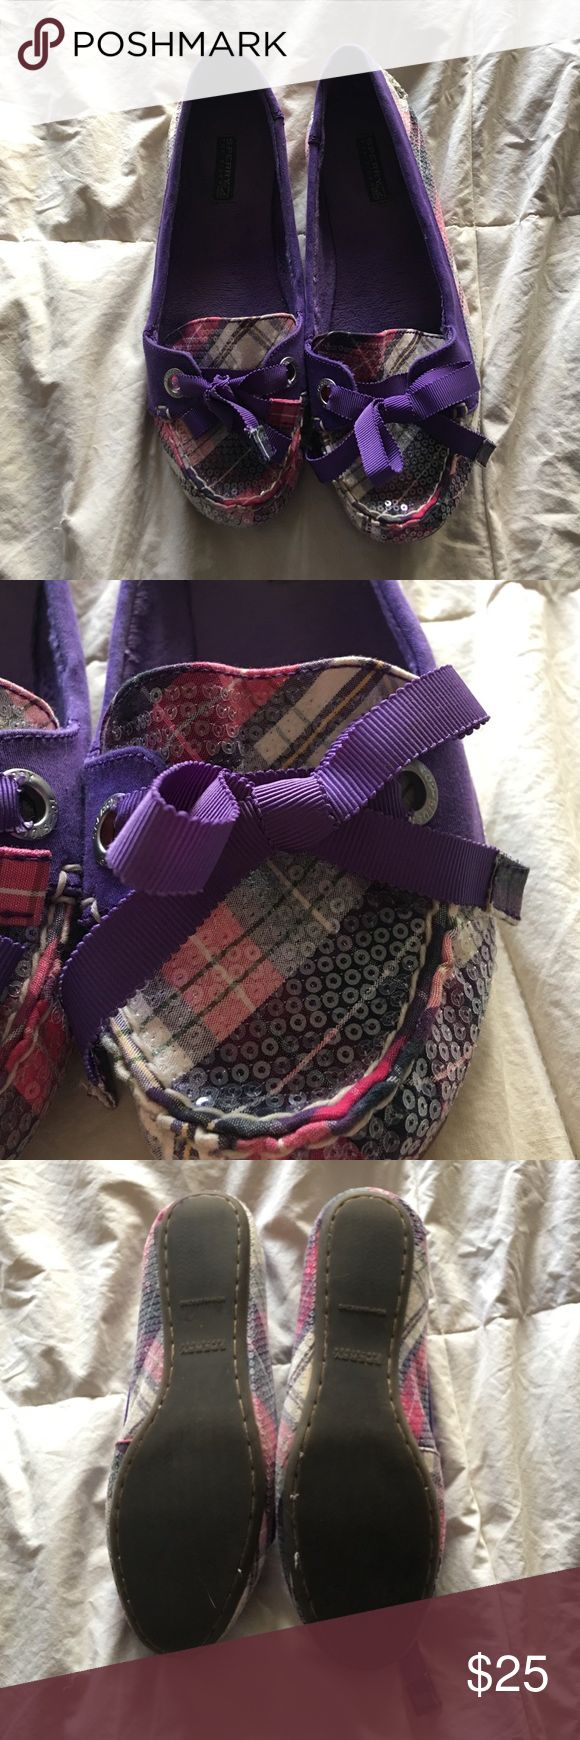 """Sequin Sperry """"Slippers"""" - Size 9 Sperry """"slippers"""" in size 9. Purple, white and pink plaid pattern covered in sequins. Soft purple lining. Tread is fairly worn. Box included! Always willing to negotiate price so make an offer! Sperry Top-Sider Shoes Flats & Loafers"""